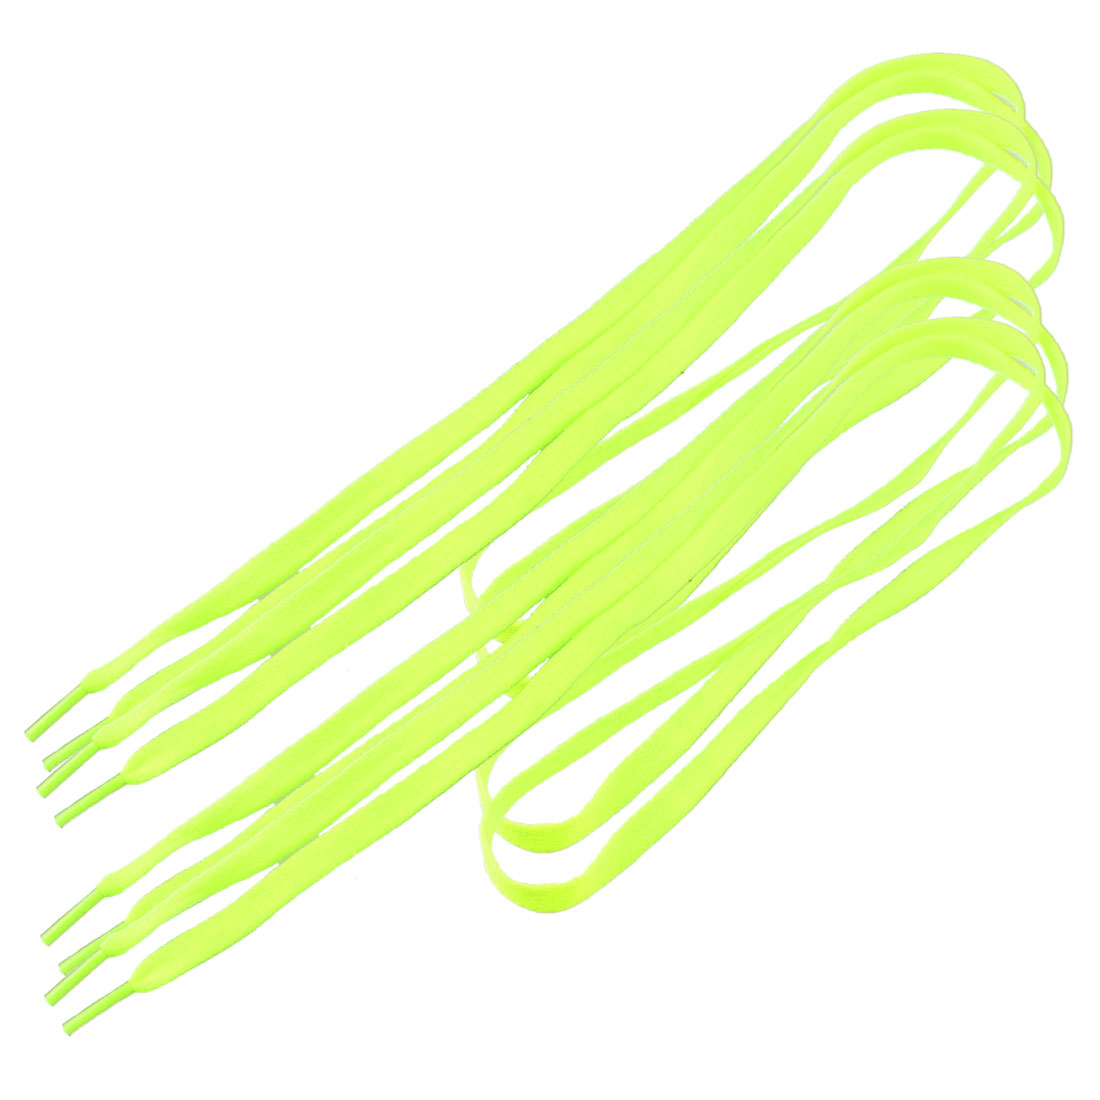 "Ladies Plastic Tips 43.2"" Length Cord String Yellow Shoelaces Shoe Laces 2 Pairs"